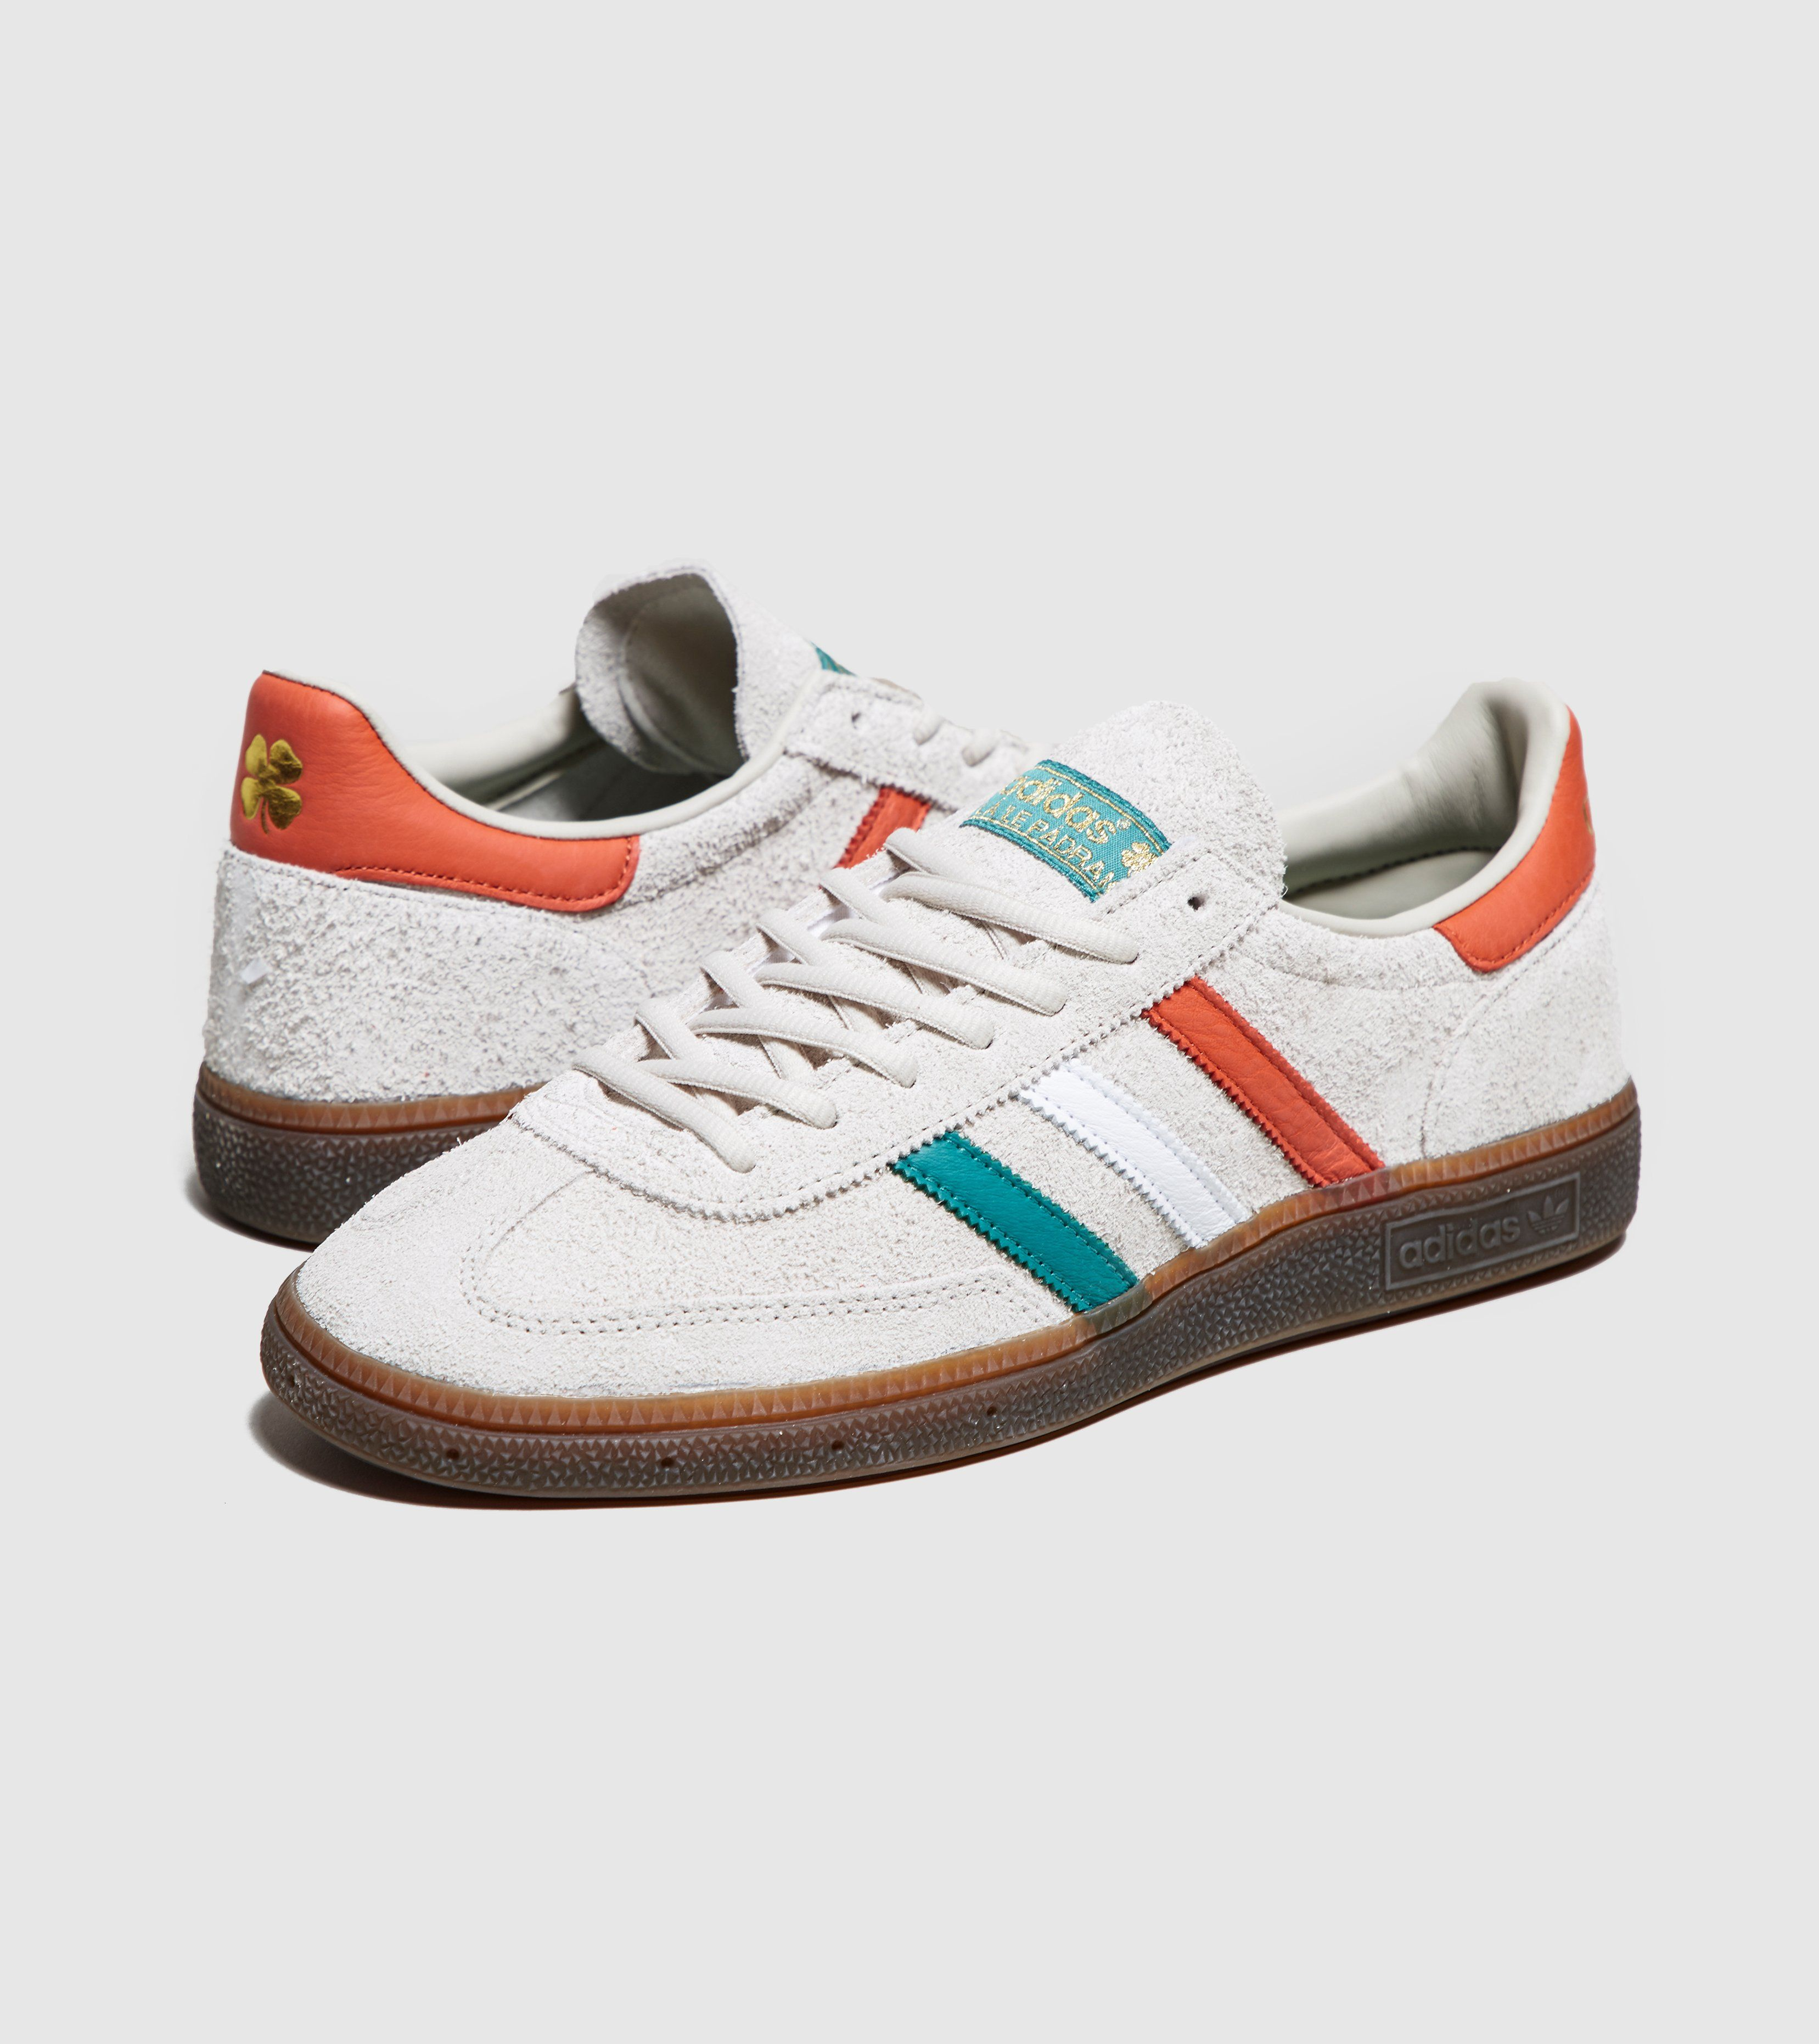 adidas Originals Spezial St Patricks Day